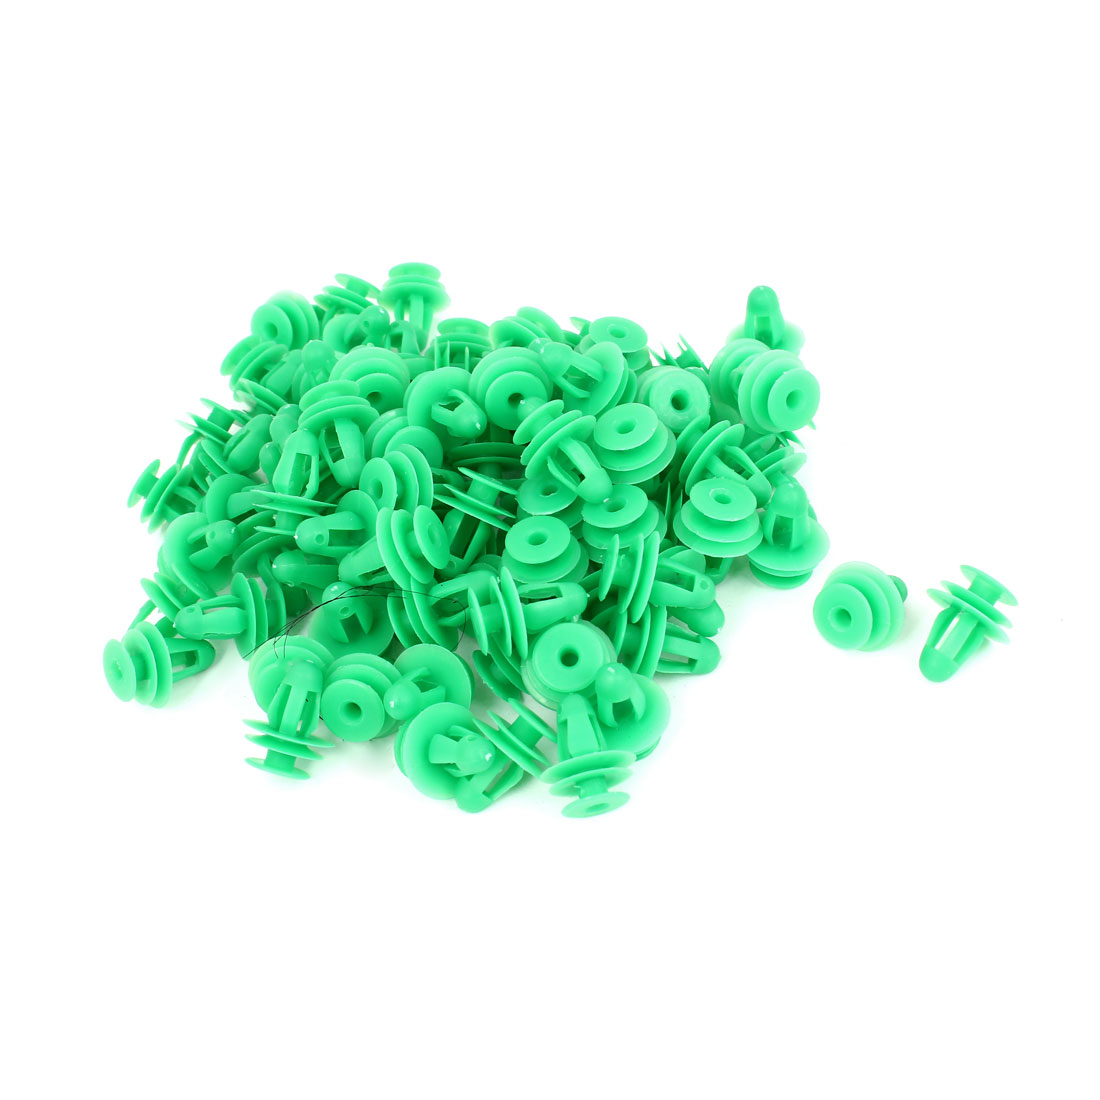 Unique Bargains Truck Car Door 9mm Hole Plastic Rivet Fastener Retainer Clip Green 100 Pcs